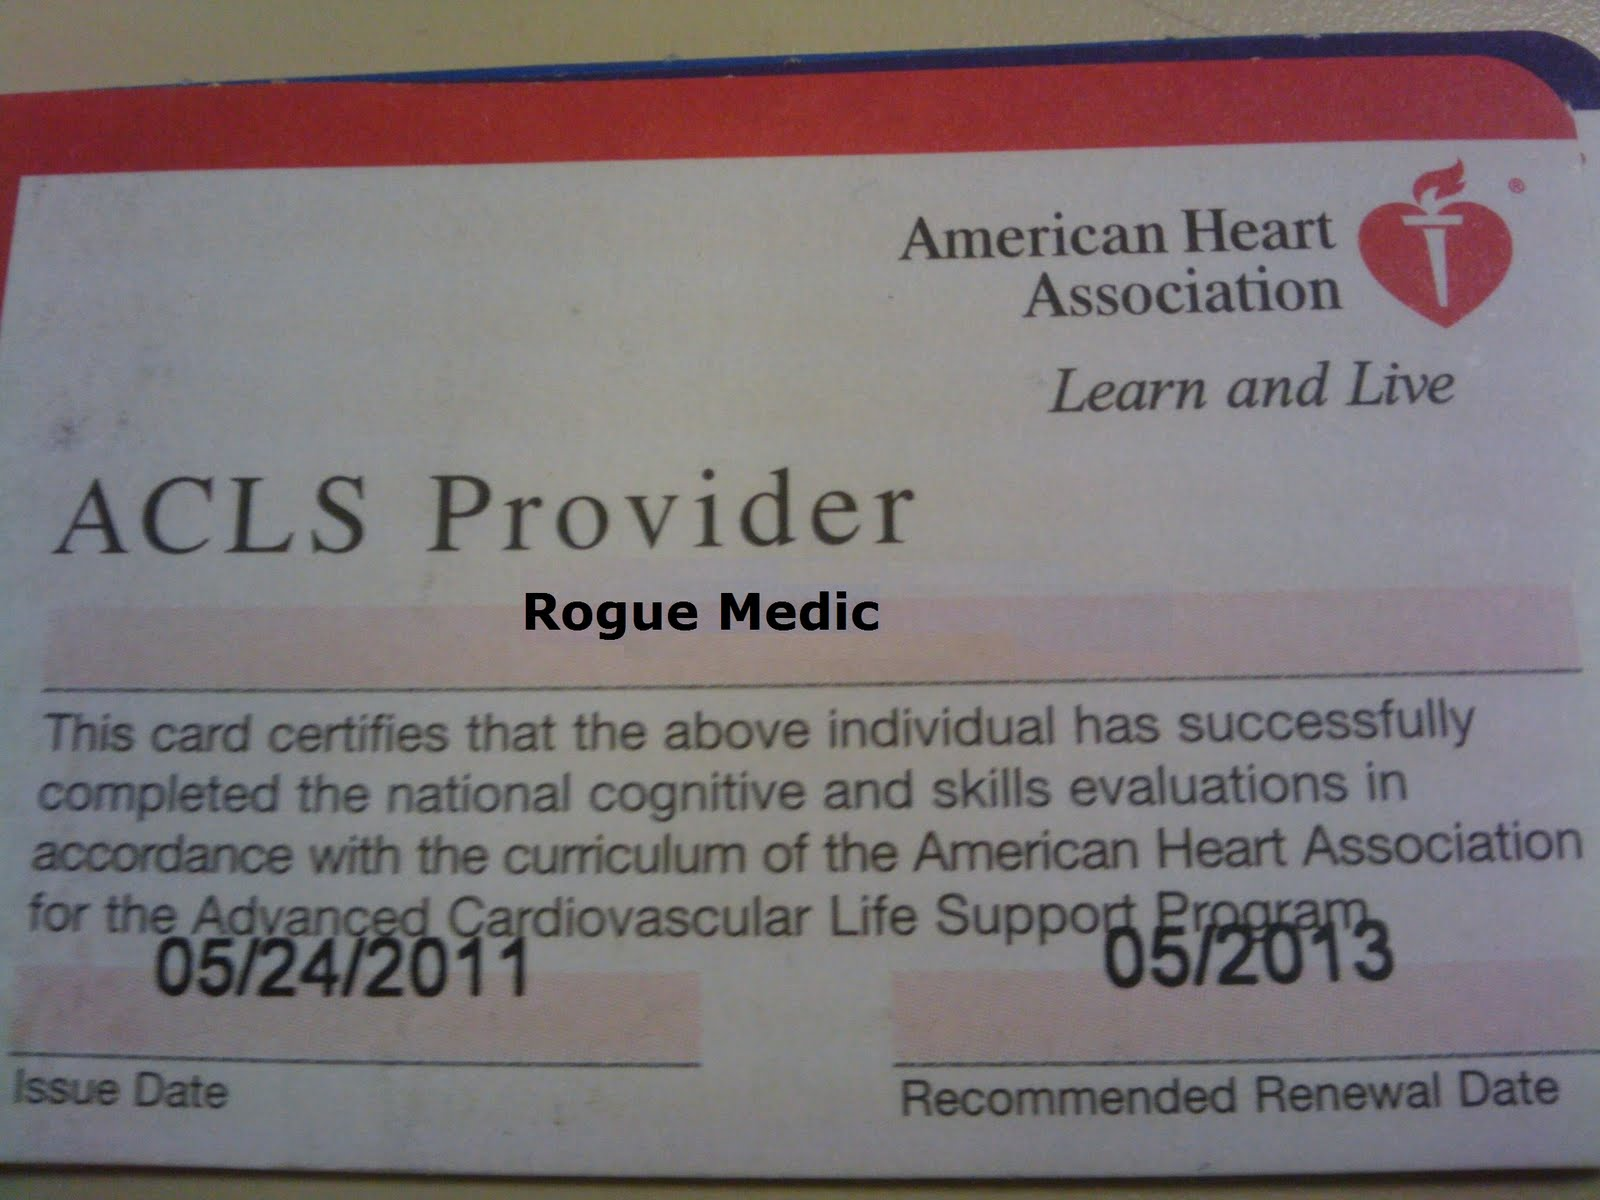 acls certification card care successfully completed national heart association american conrad murray proper trial standard support advanced cardiac accordance certifies